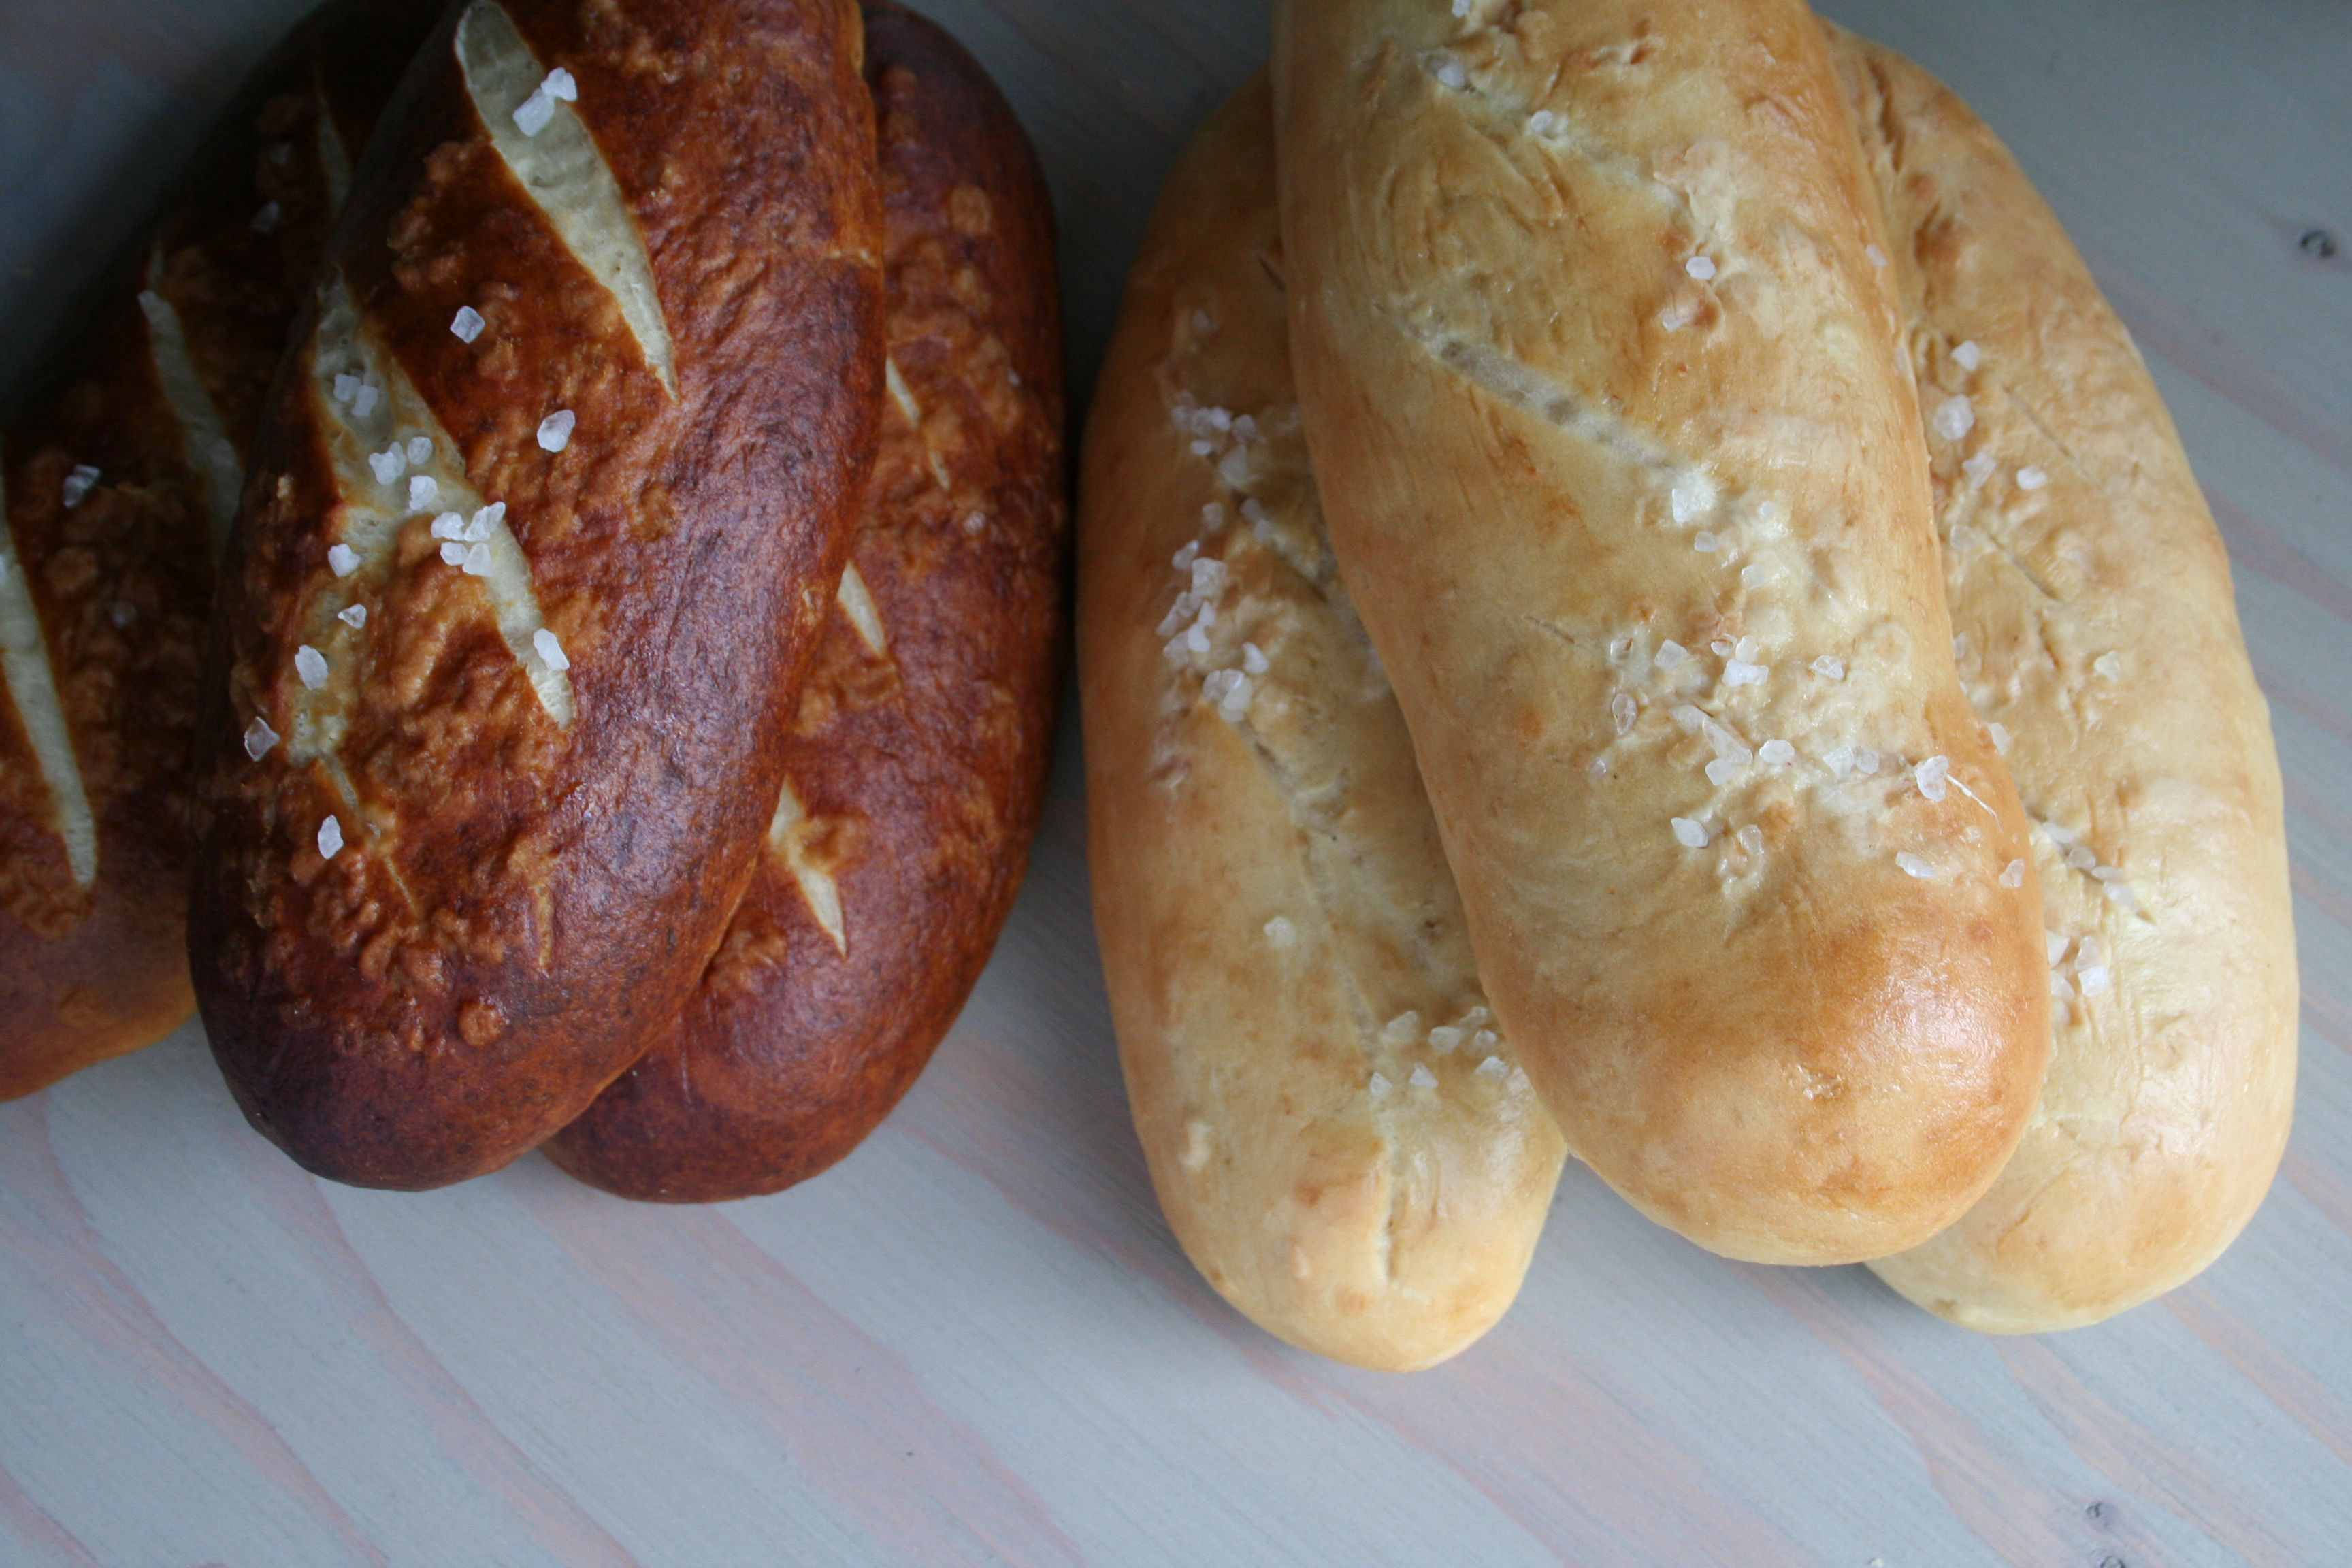 Pretzel BRead and Non-Pretzel Bread